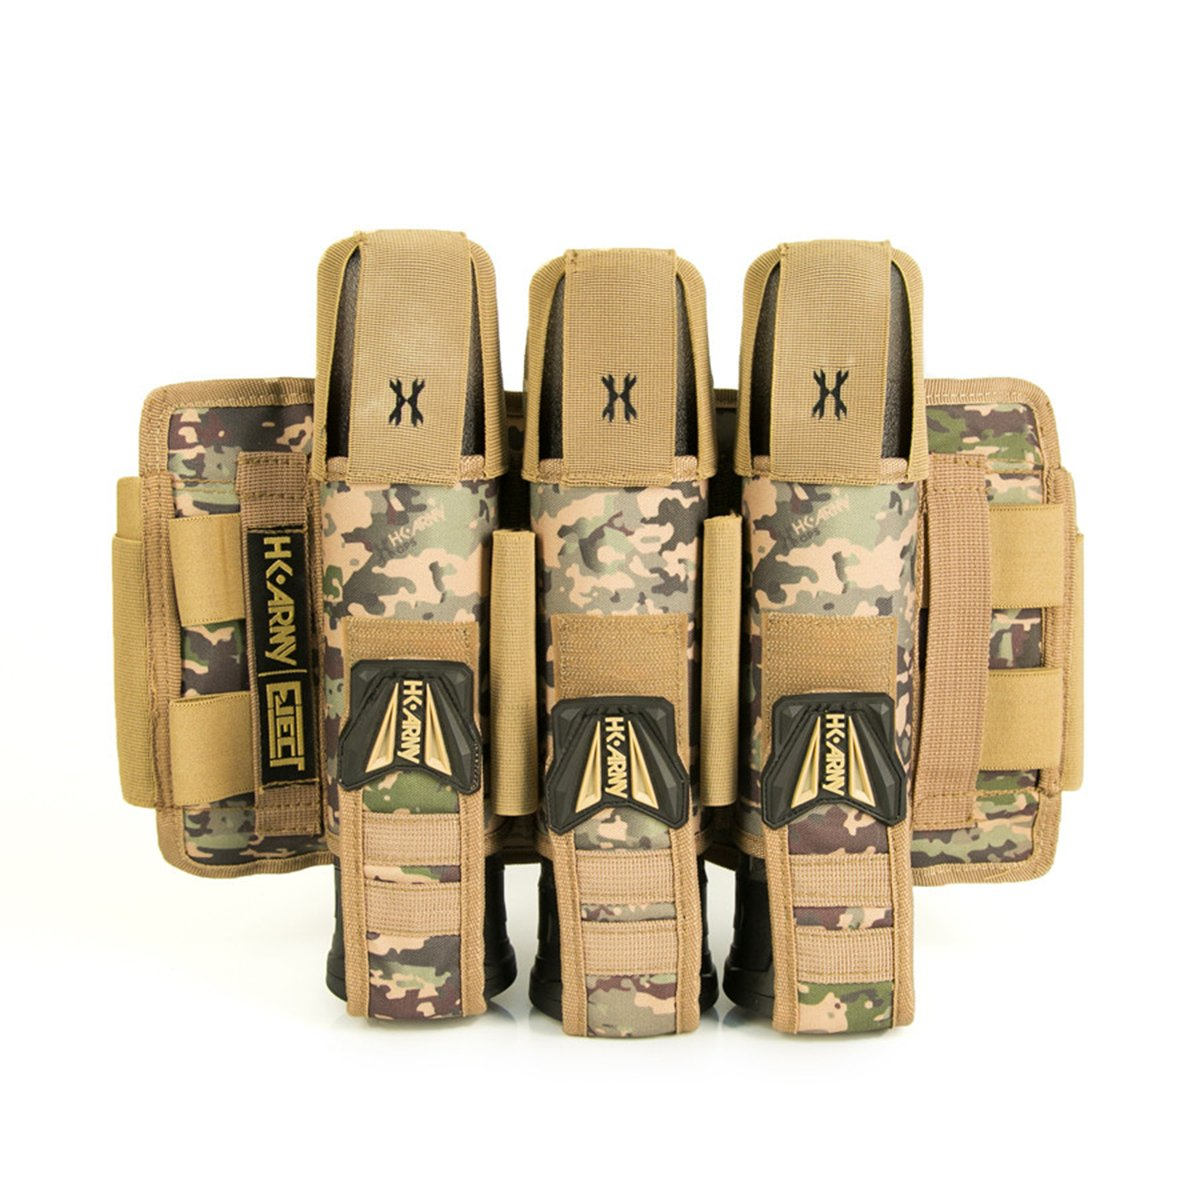 HK Army Eject Harness - HSTL Cam - 3+2 by HK Army